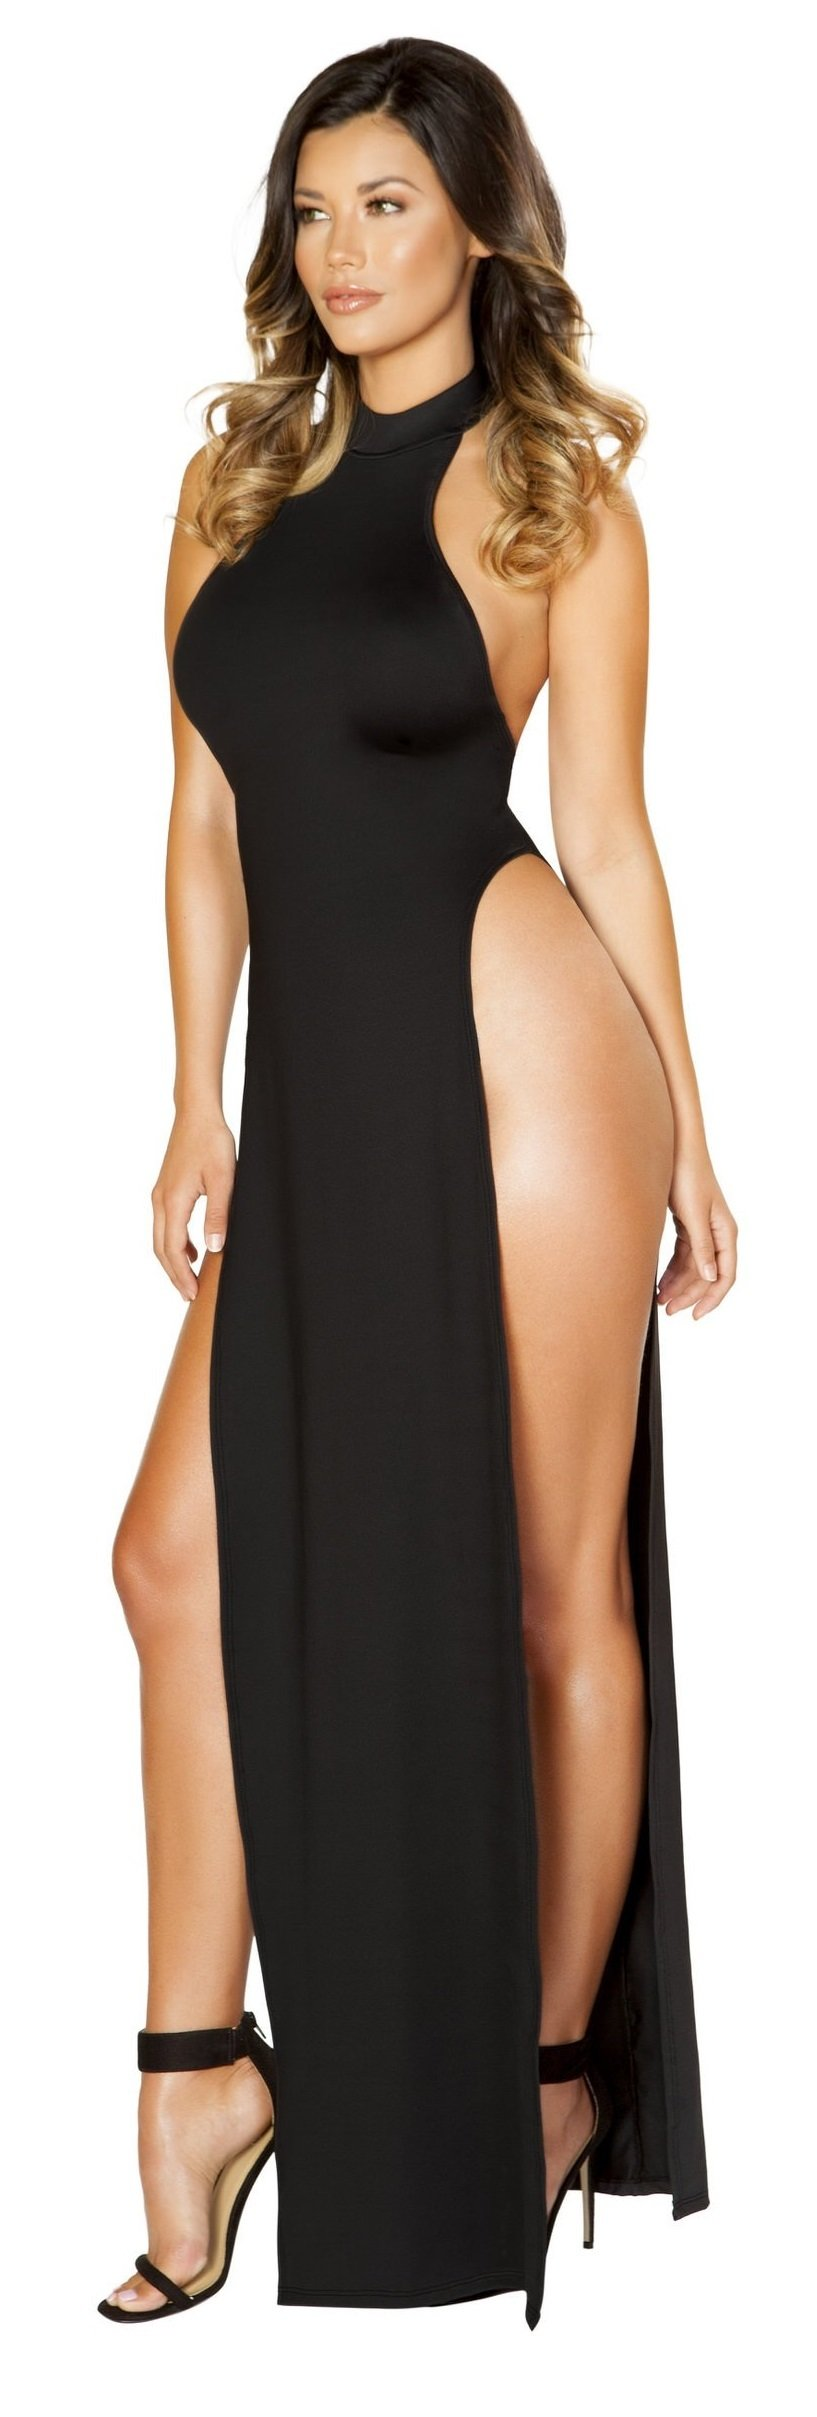 Maxi Length Halter Neck Dress with High Slits 3529-Blk